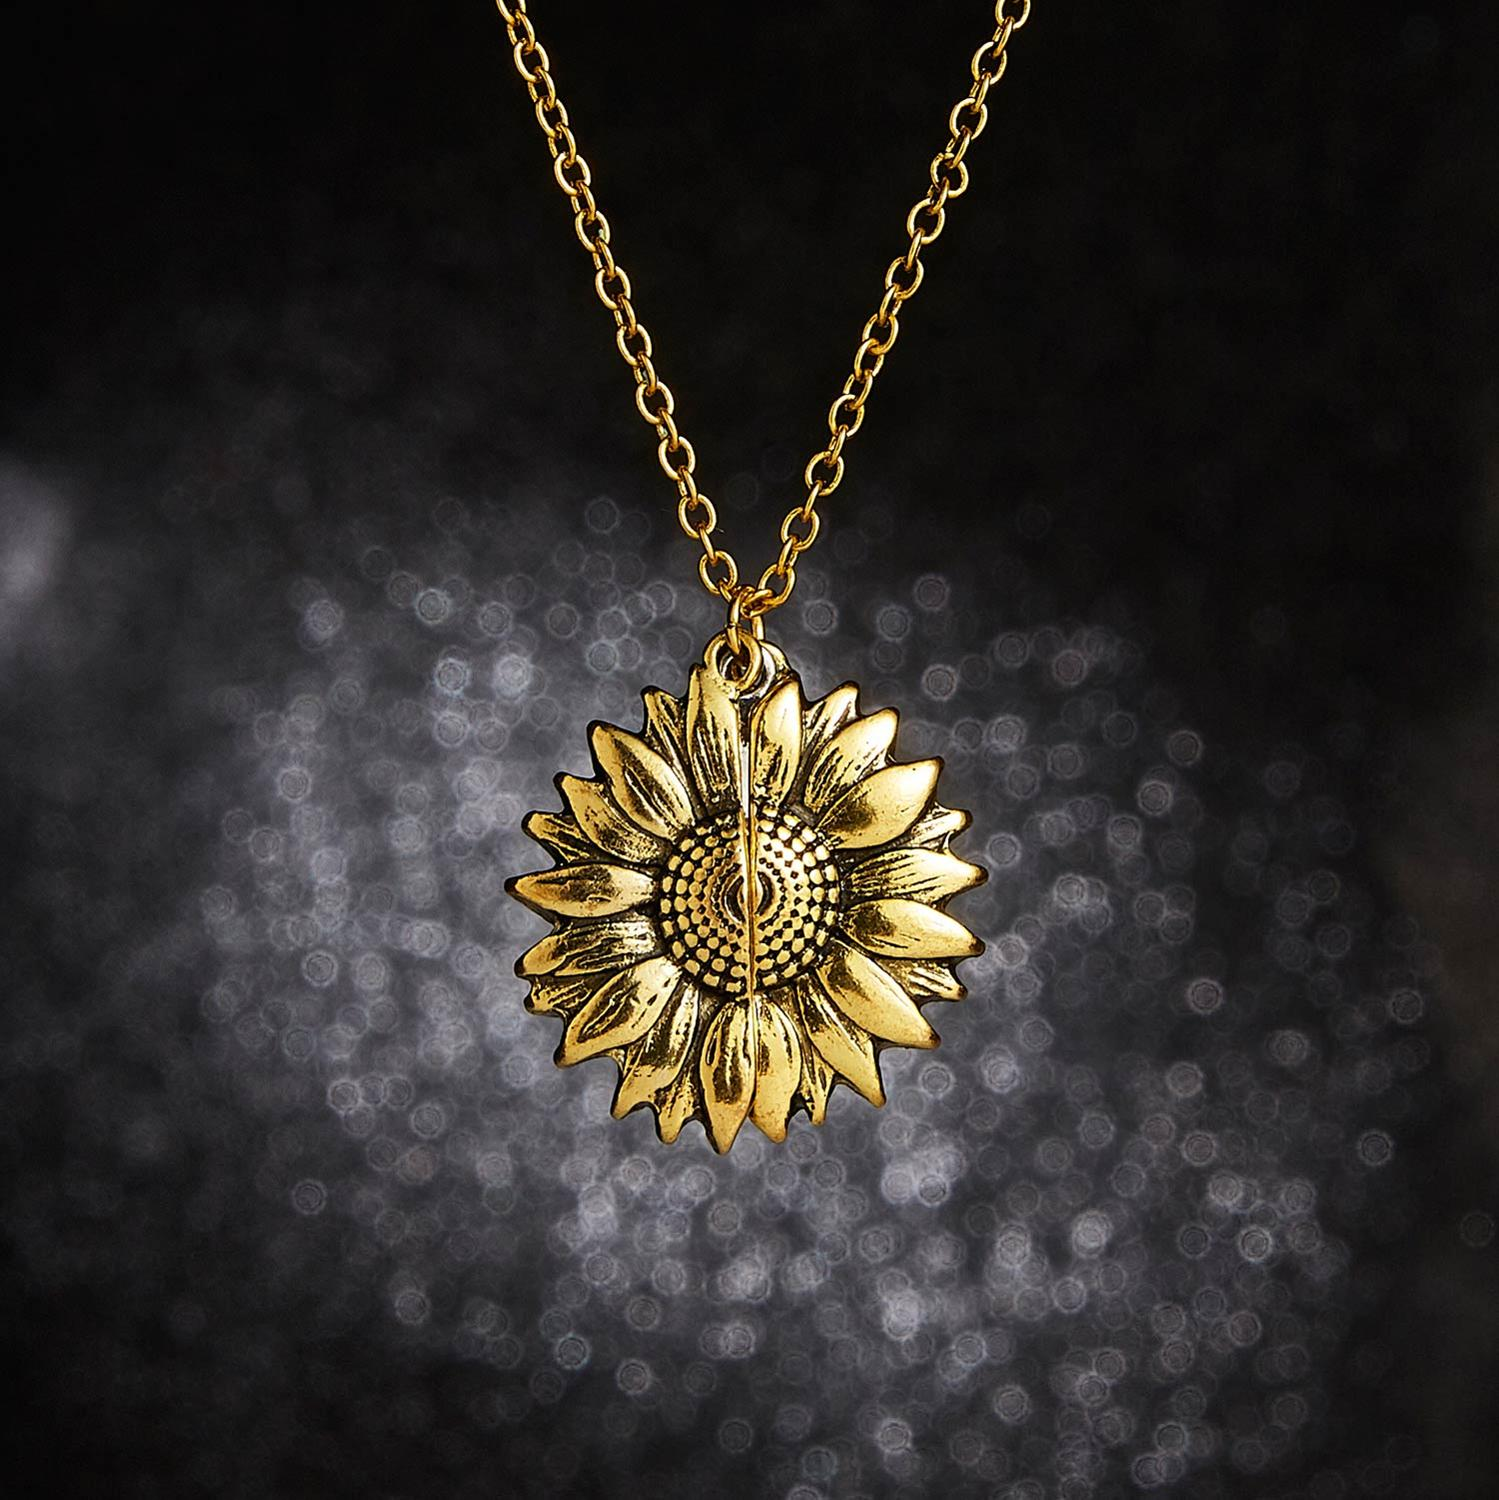 Sunflower Necklace | You Are My Sunshine Pendant 4